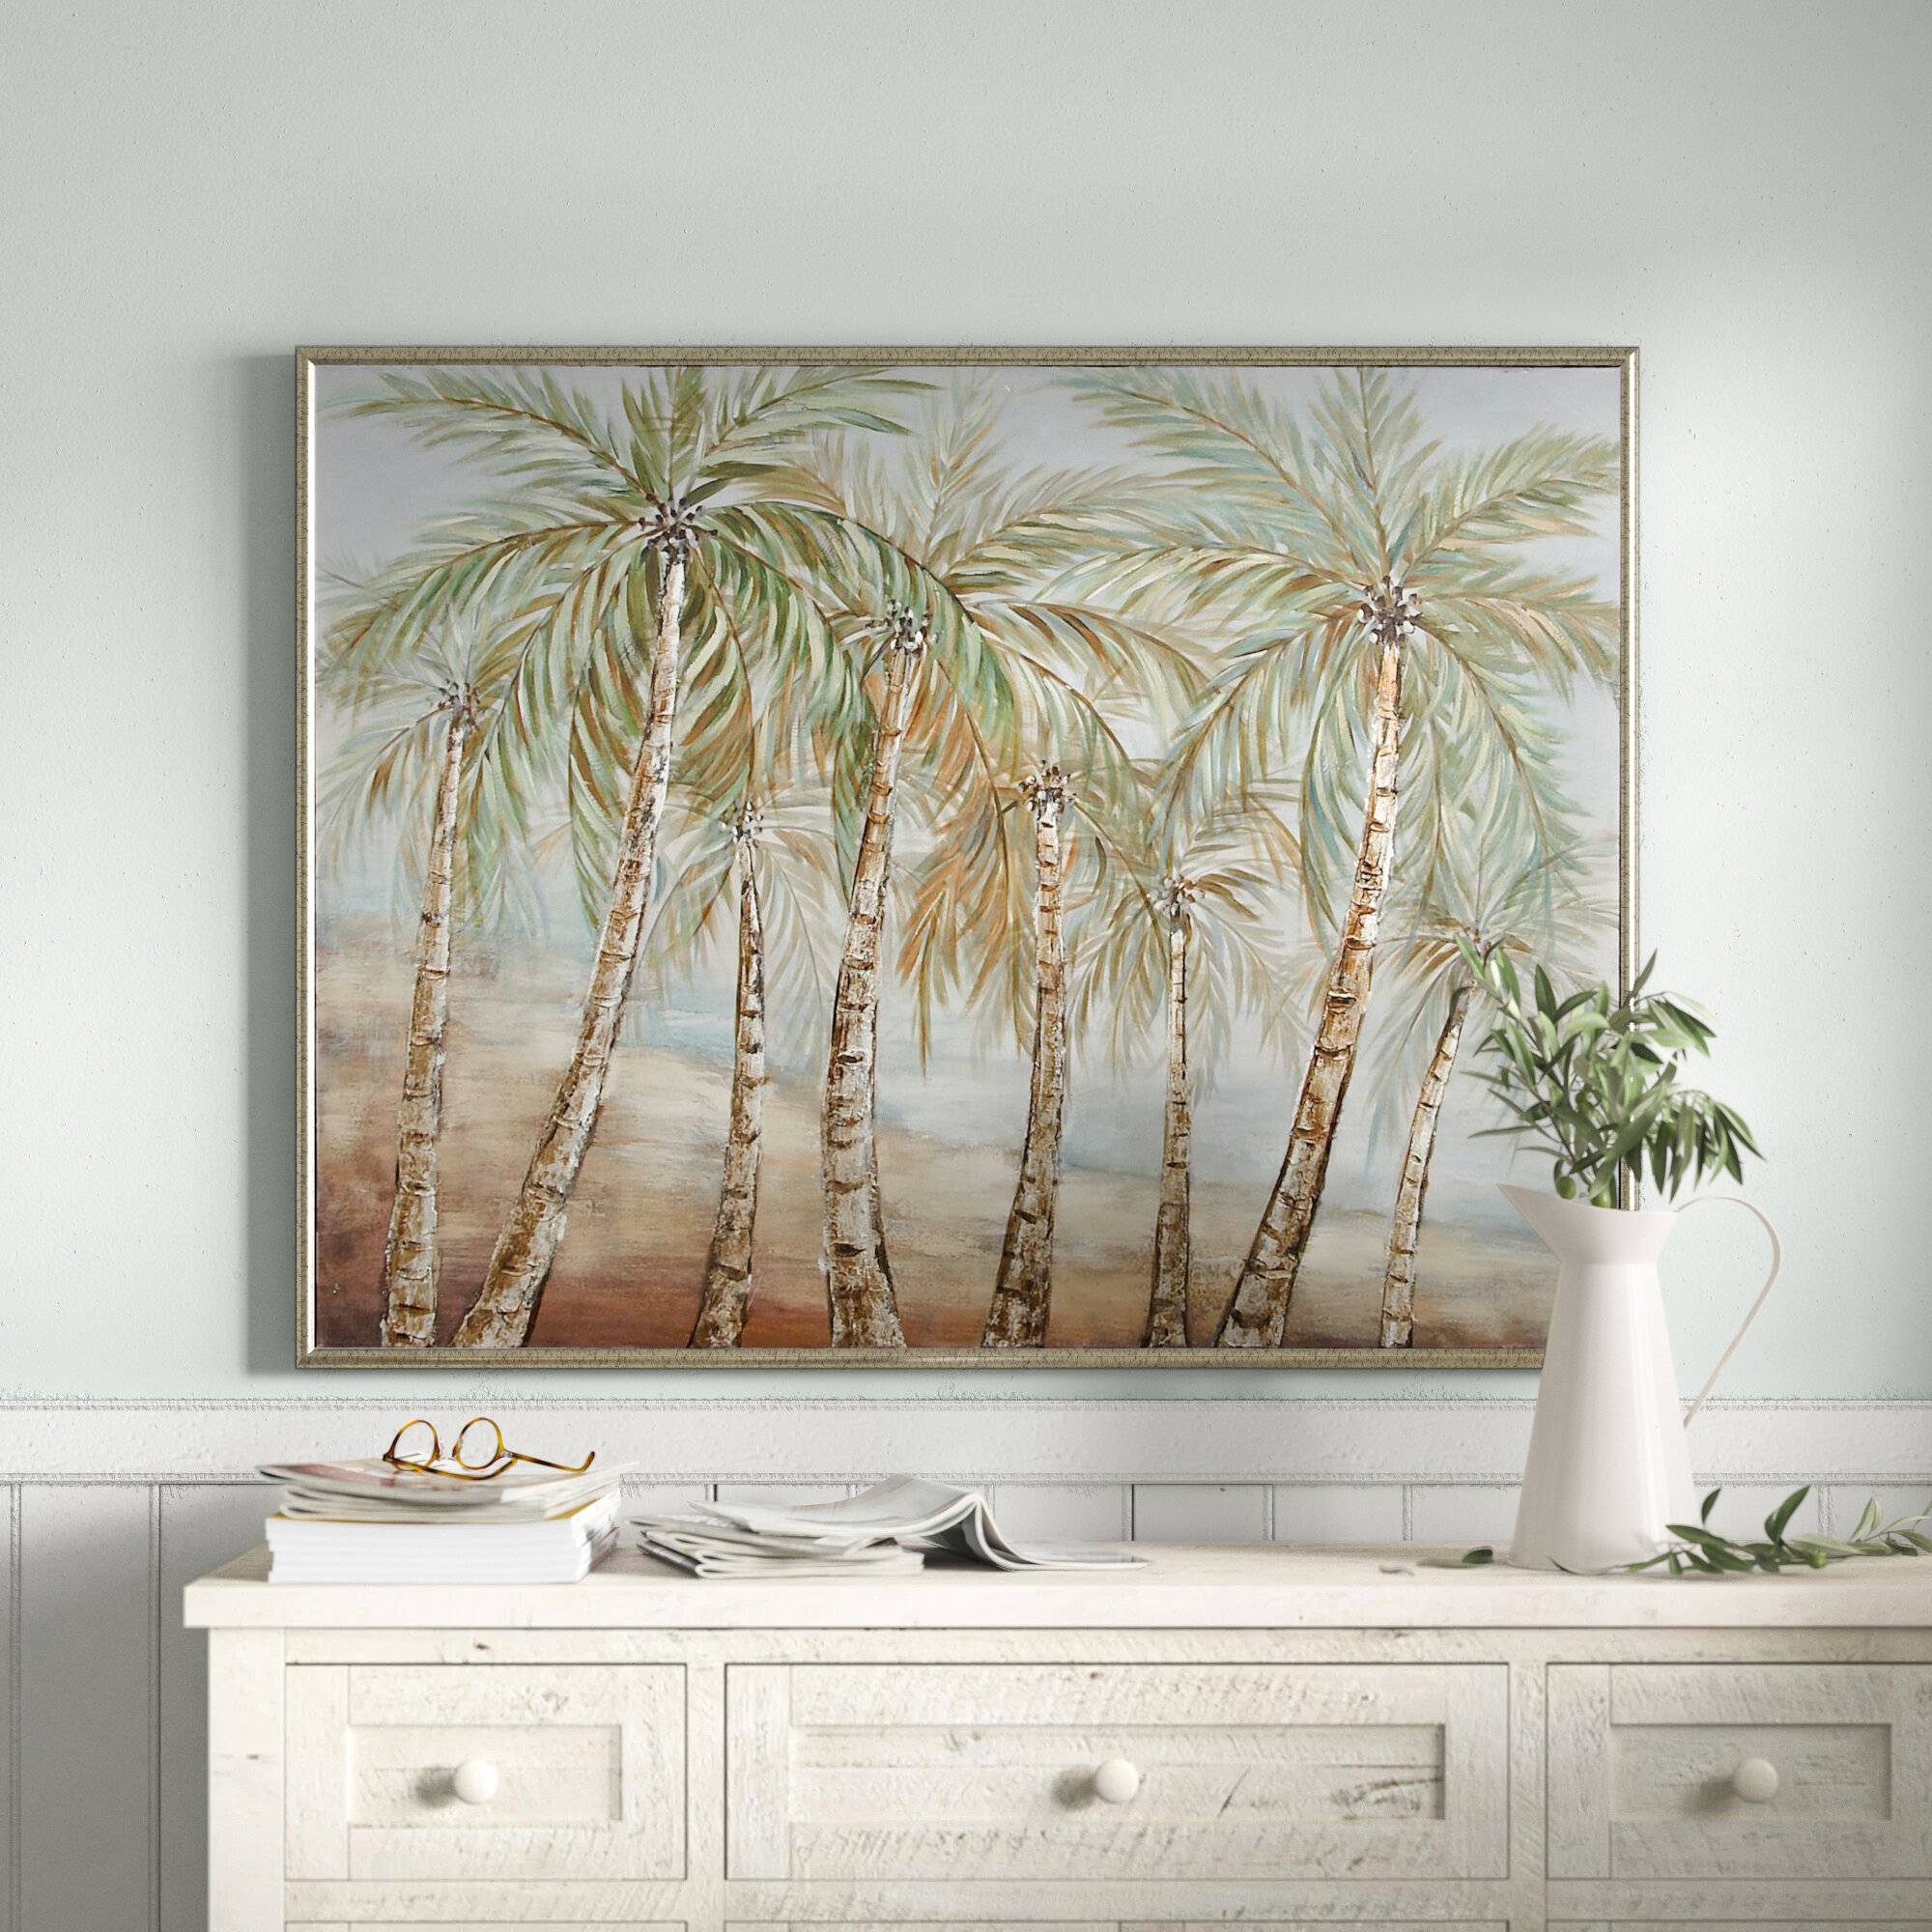 Coastal Coconut Trees By The Beach Framed Print On Reviews Birch Lane